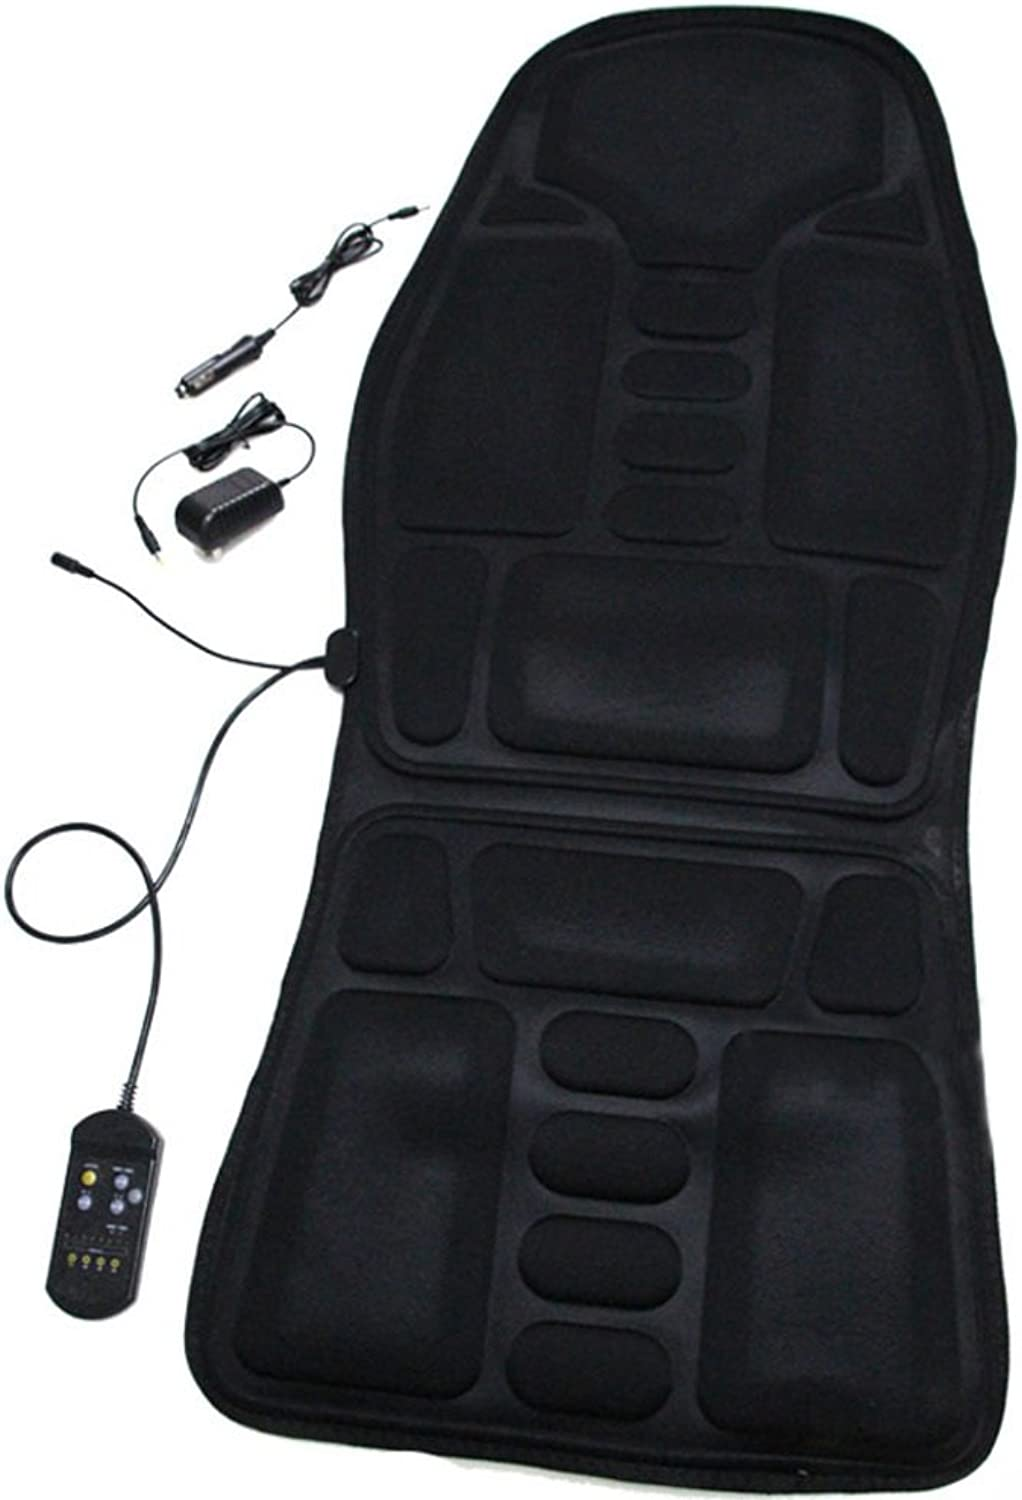 Auto Massage Cushion,Office Massage Cushion Back Thigh Massage-Black